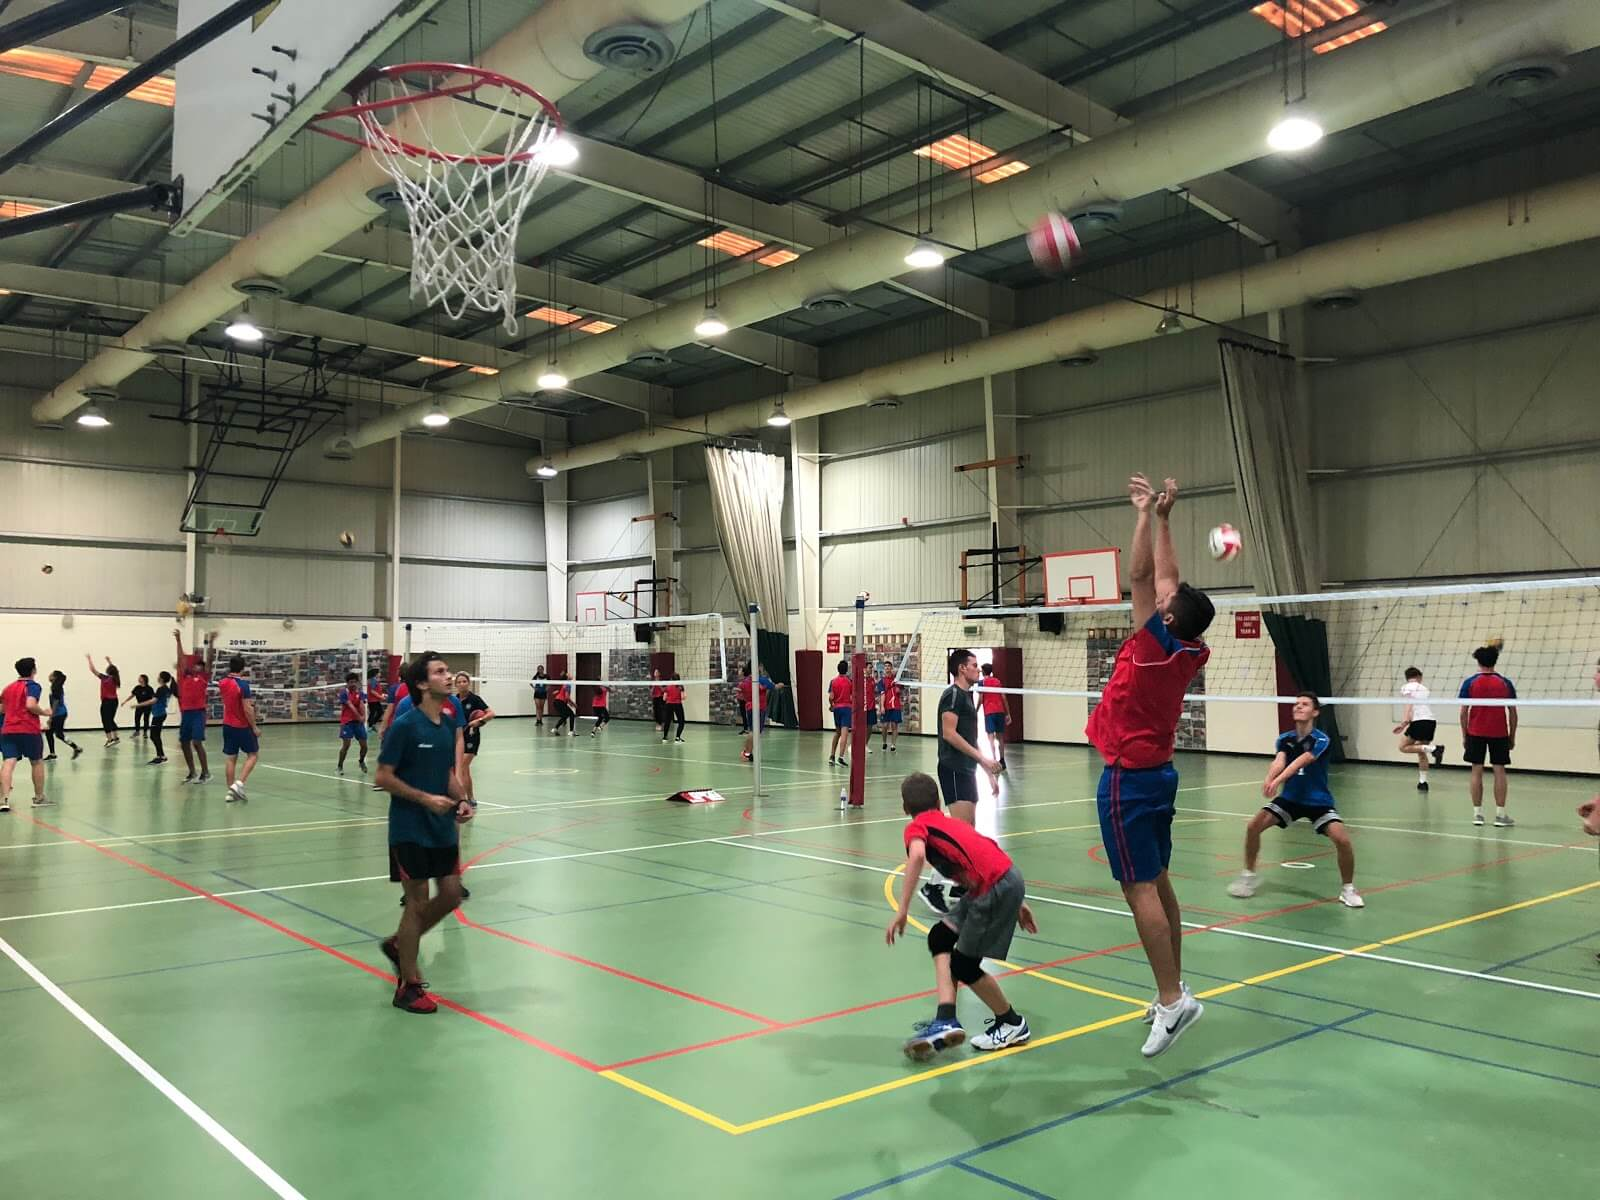 Volleyball season: It is currently volleyball season for both boys and girls in all Year Groups and, depending on whether you are a Junior, Intermediate or Senior, you are given the opportunity to practice your competitive skills in tournaments with other schools. I feel taking part is very important as it can give you time to de-stress from the pressure of GCSE's and A levels, and give you time to relax and compete. There are also A and B teams this year and ongoing training sessions for all which means more people have a greater chance of participating and getting involved.